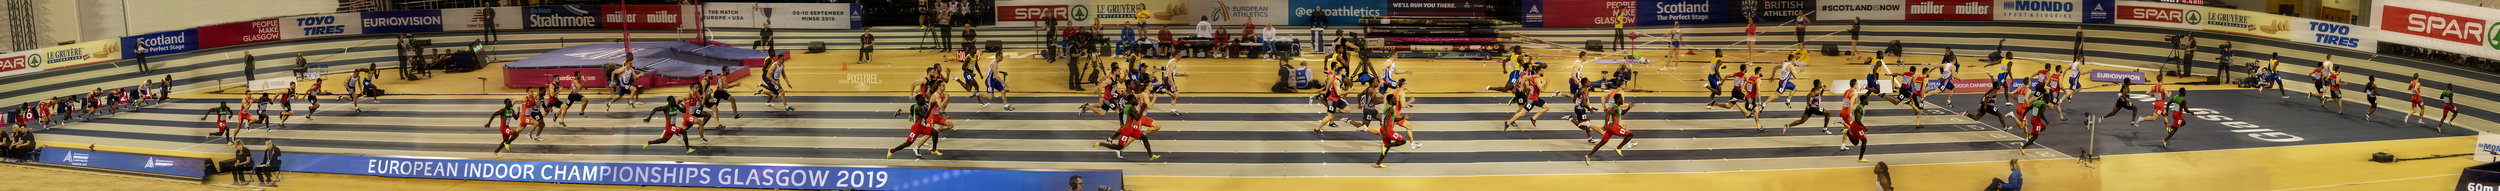 Mens 60m Heat 4 at the European Indoor Athletics Championships in Glasgow